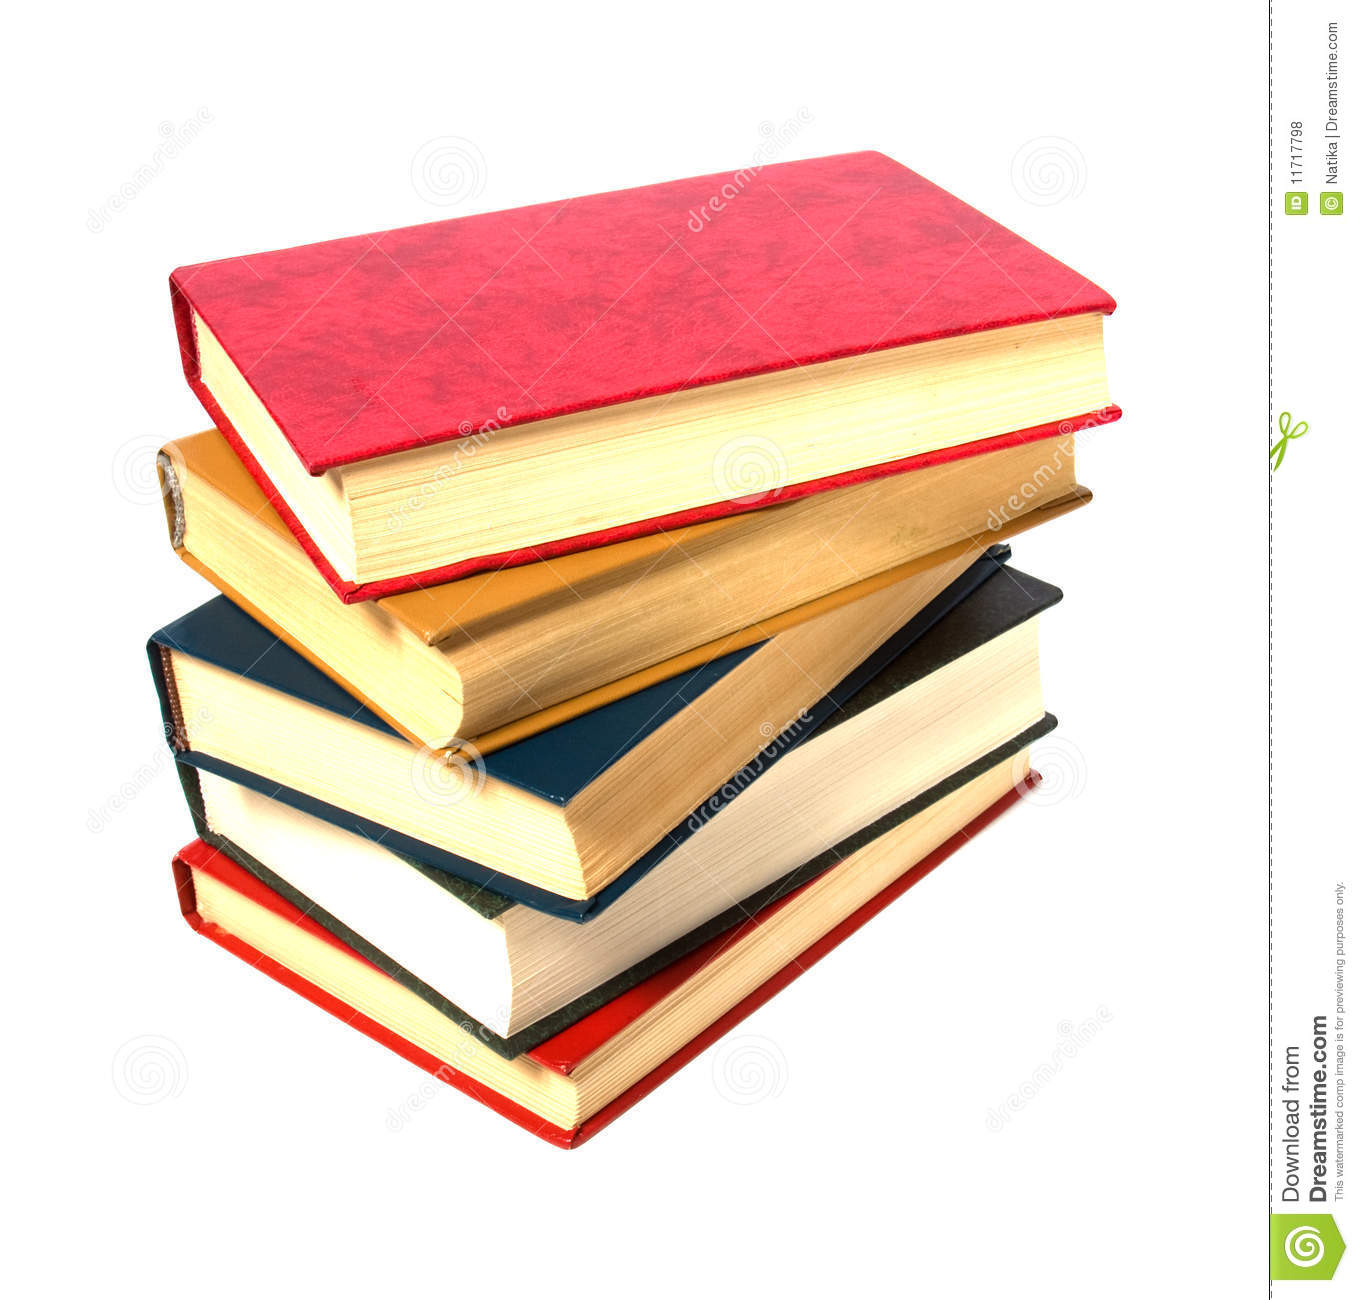 book stack royalty free stock photos image 11717798